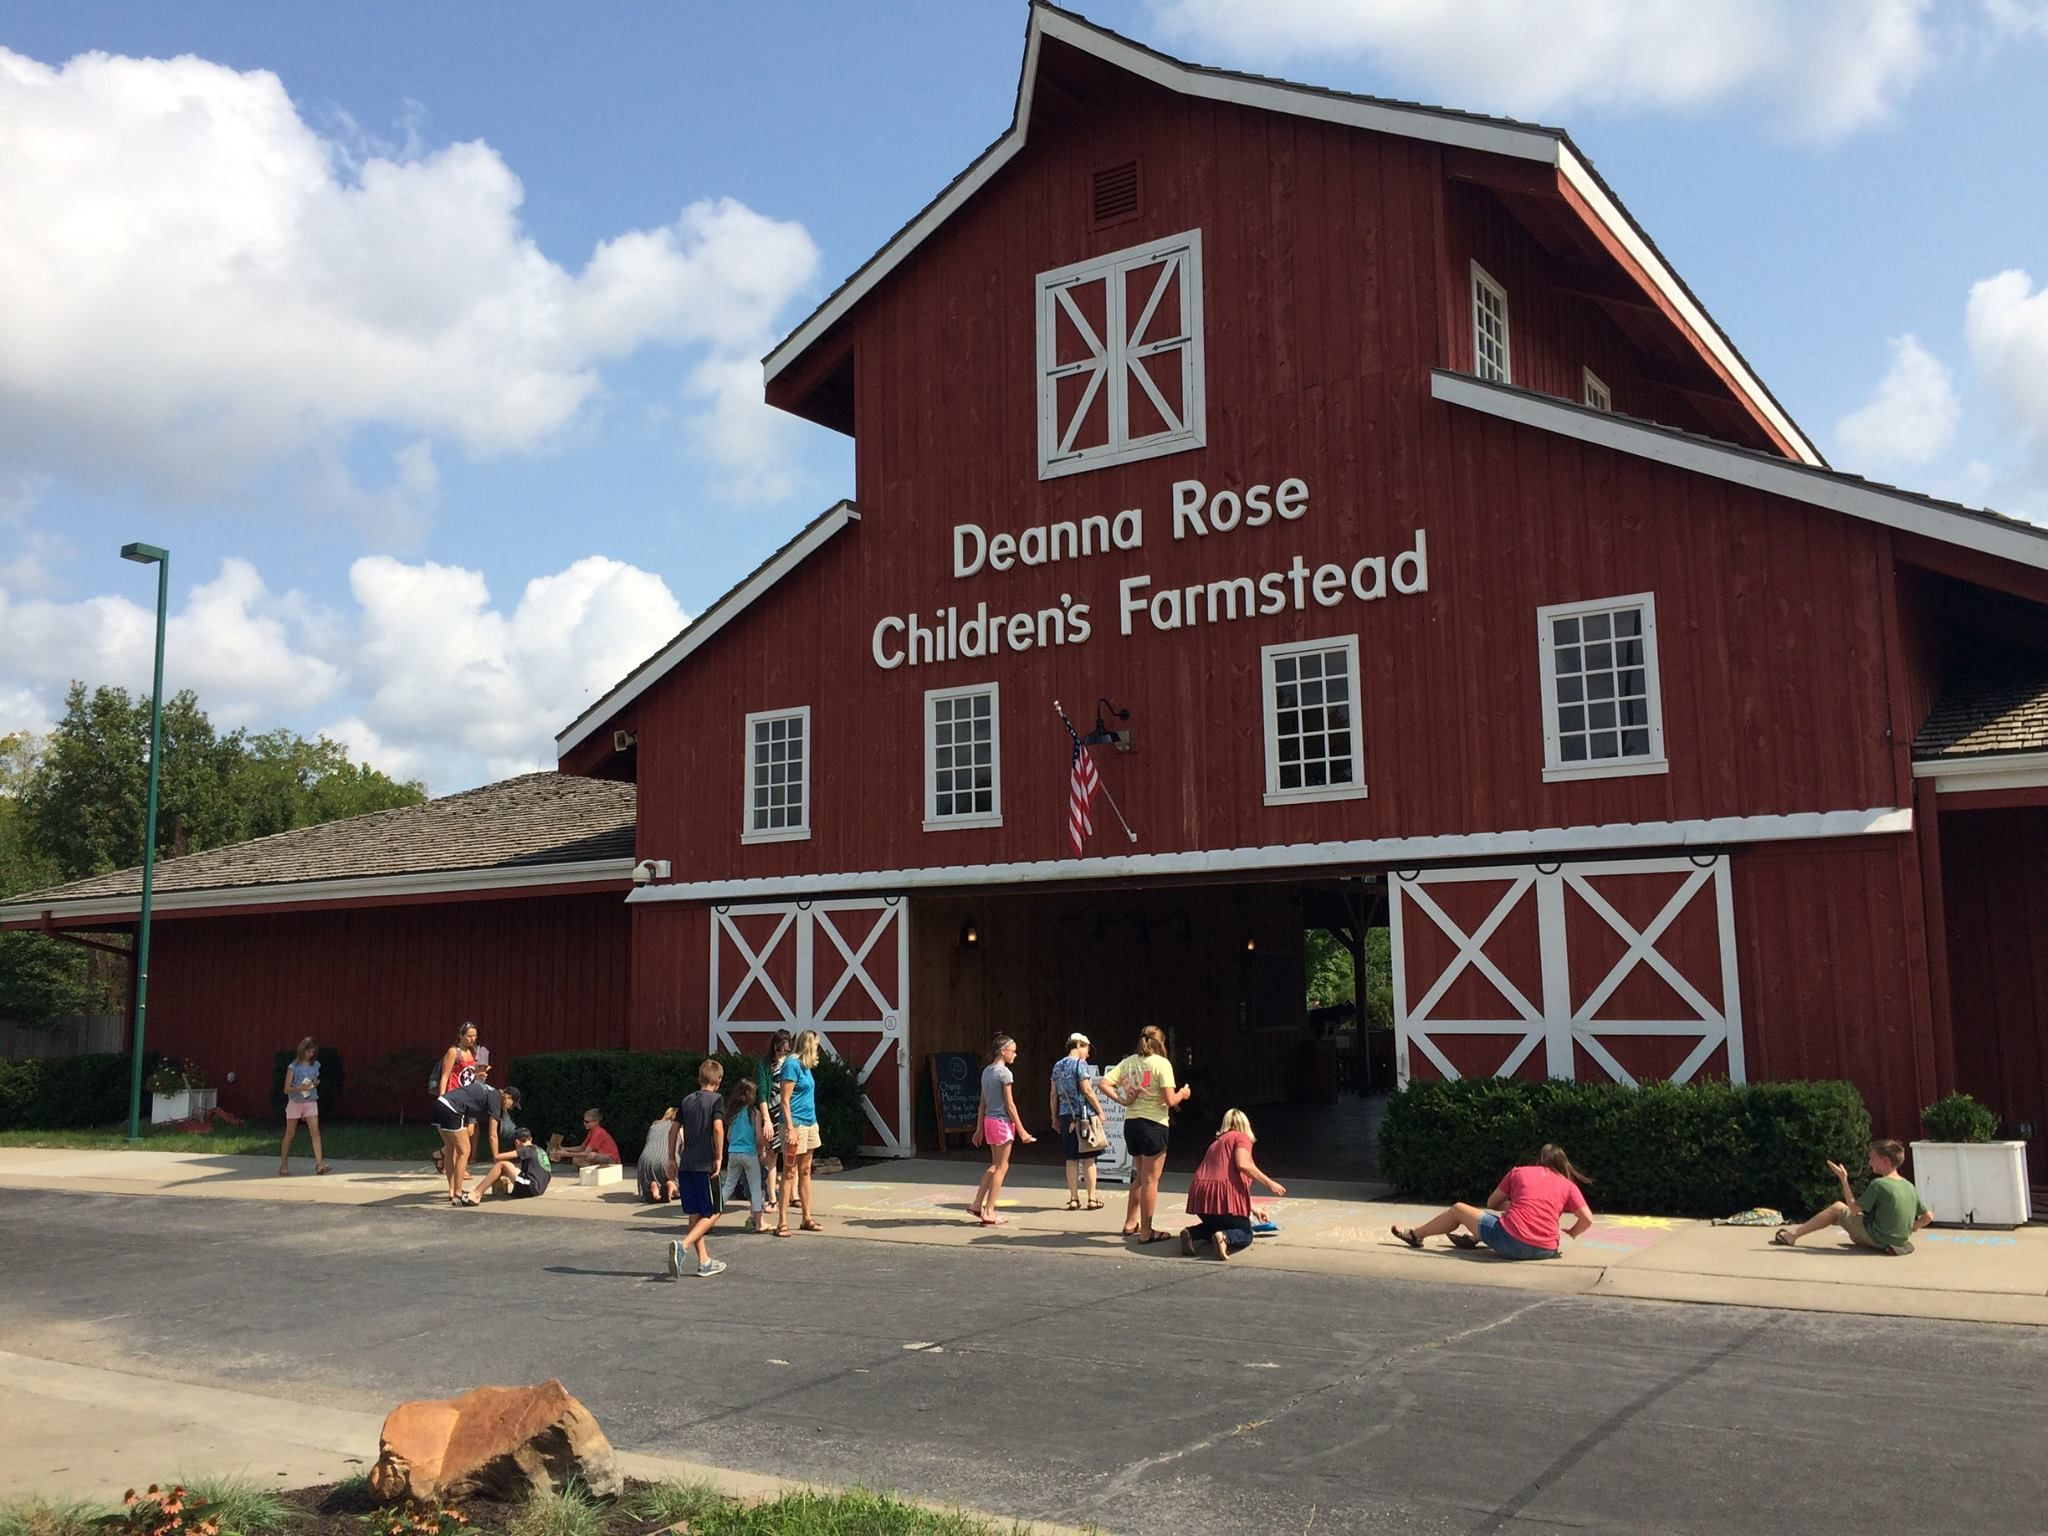 An Exciting Farm In Kansas Deanna Rose Children S Farmstead Will Take You Back In Time This Spring Kansas Farmstead Kansas Attractions